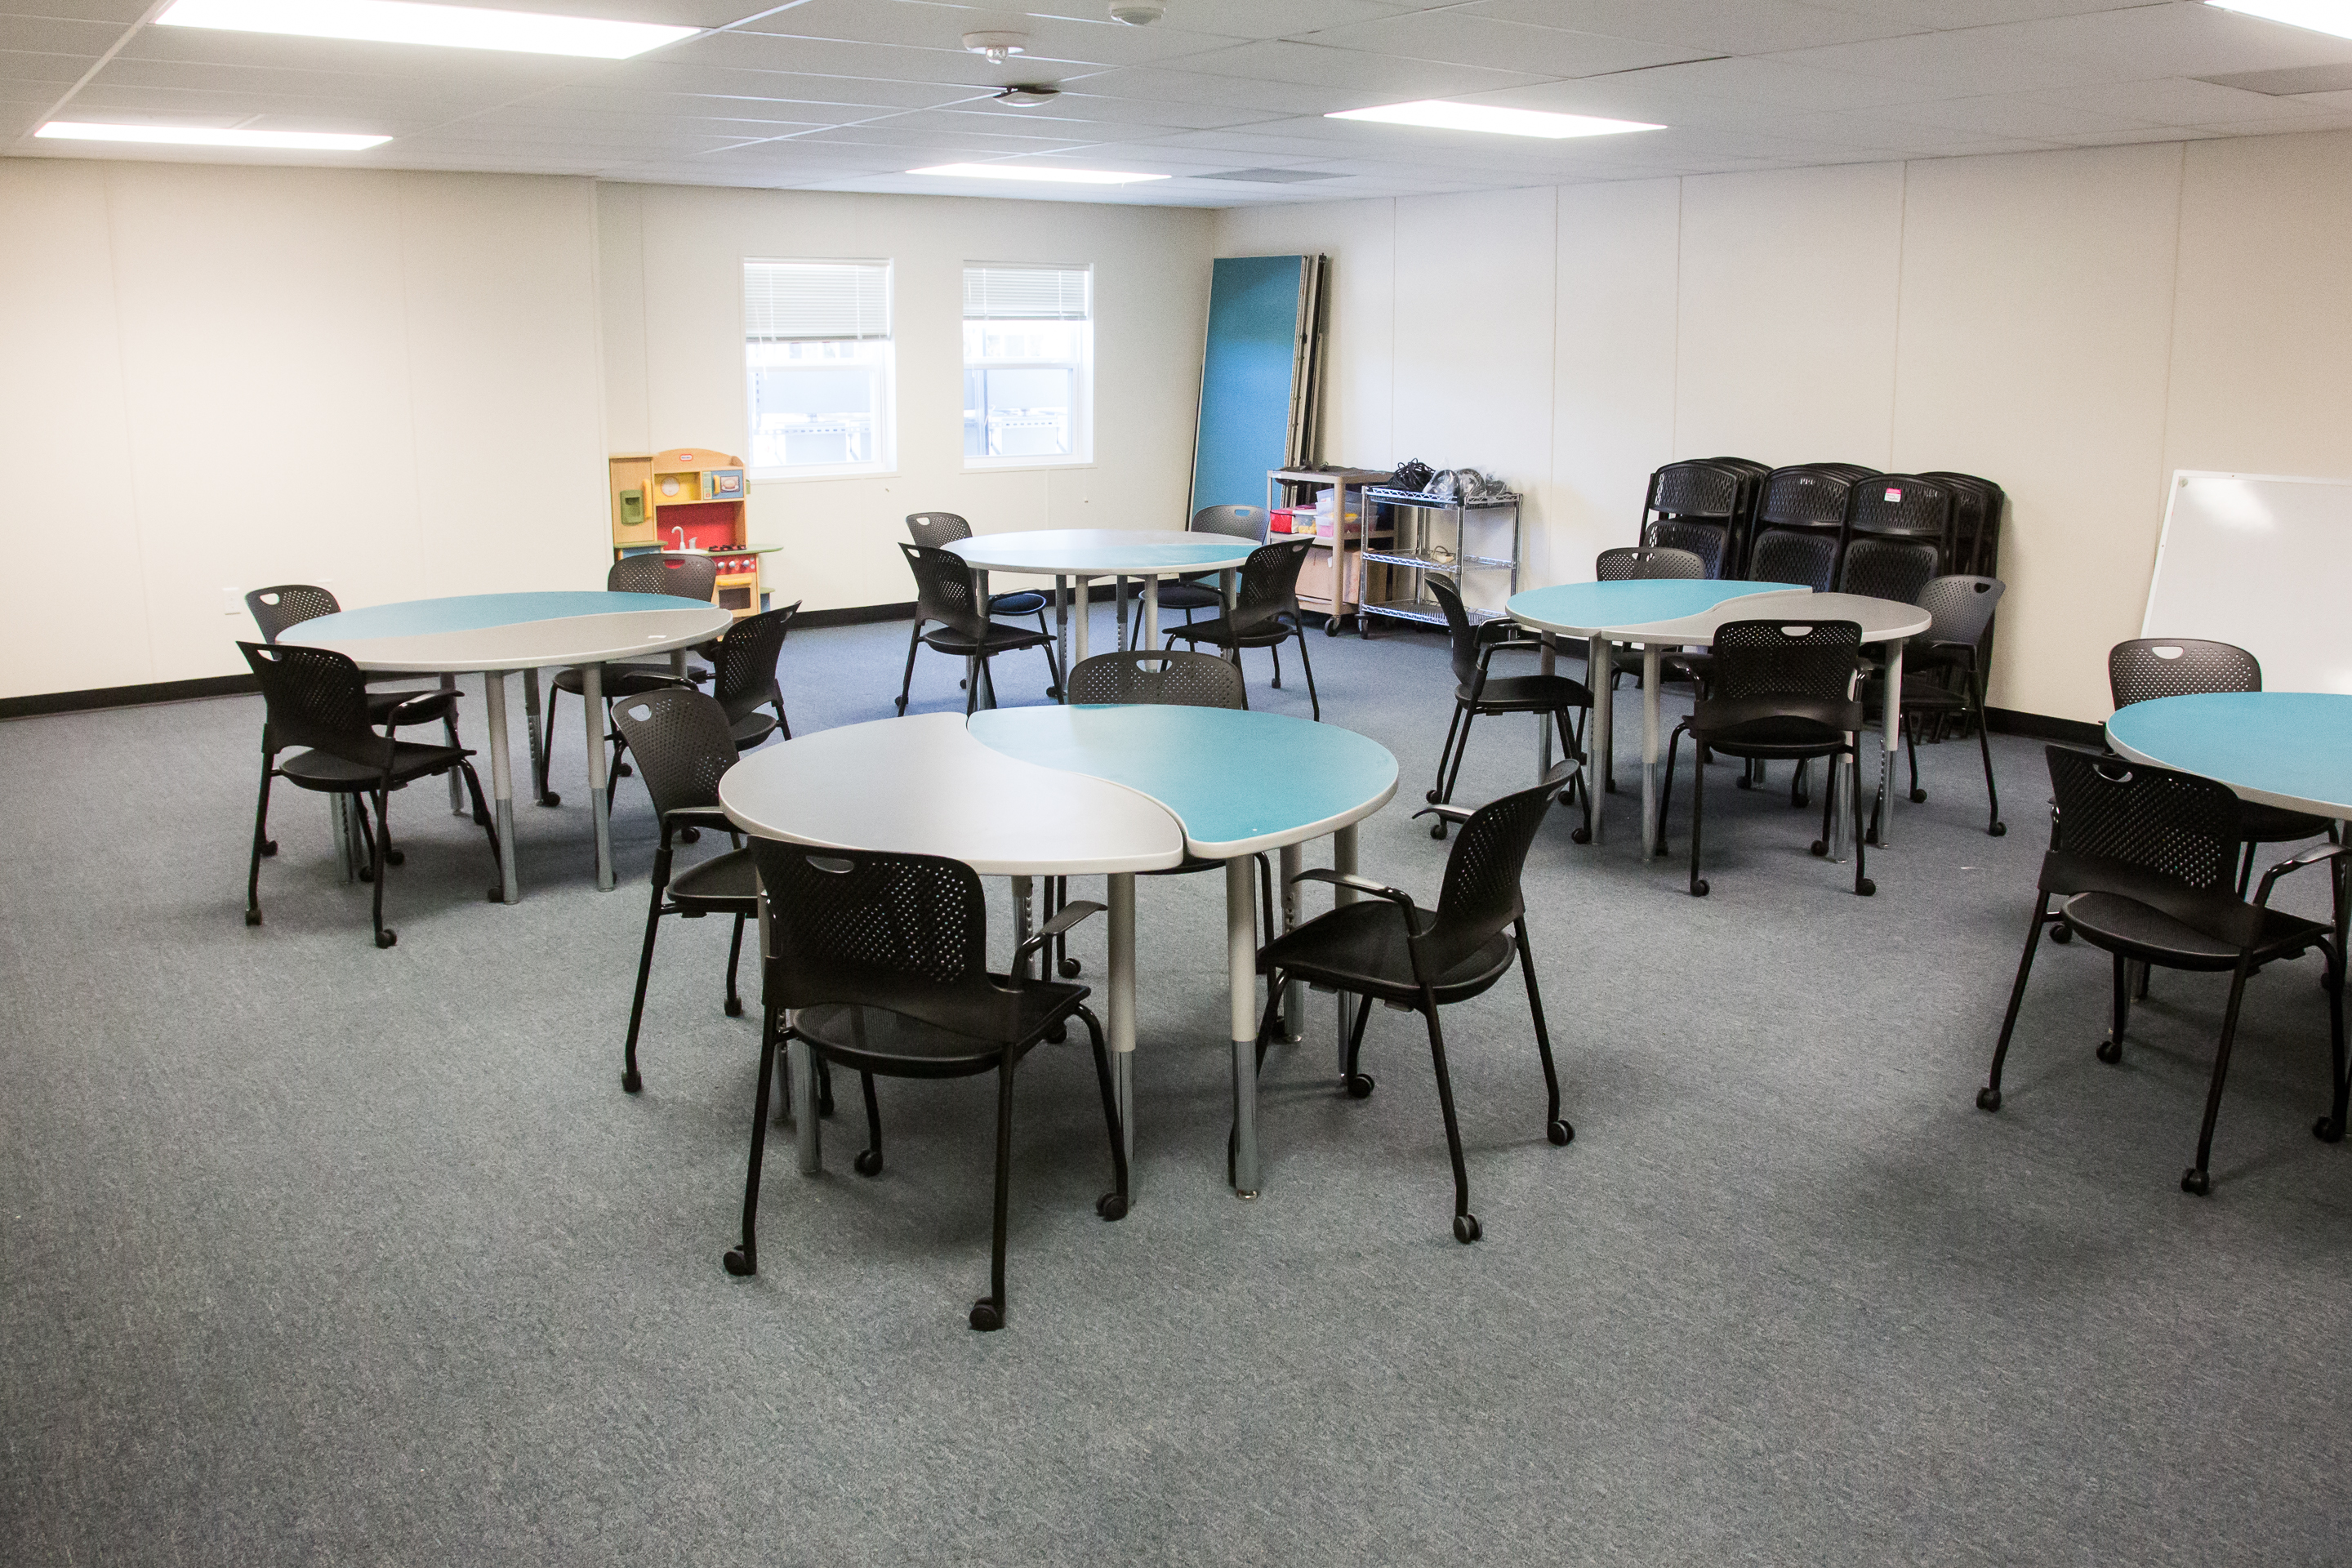 Highland temporary wing classroom 8 19